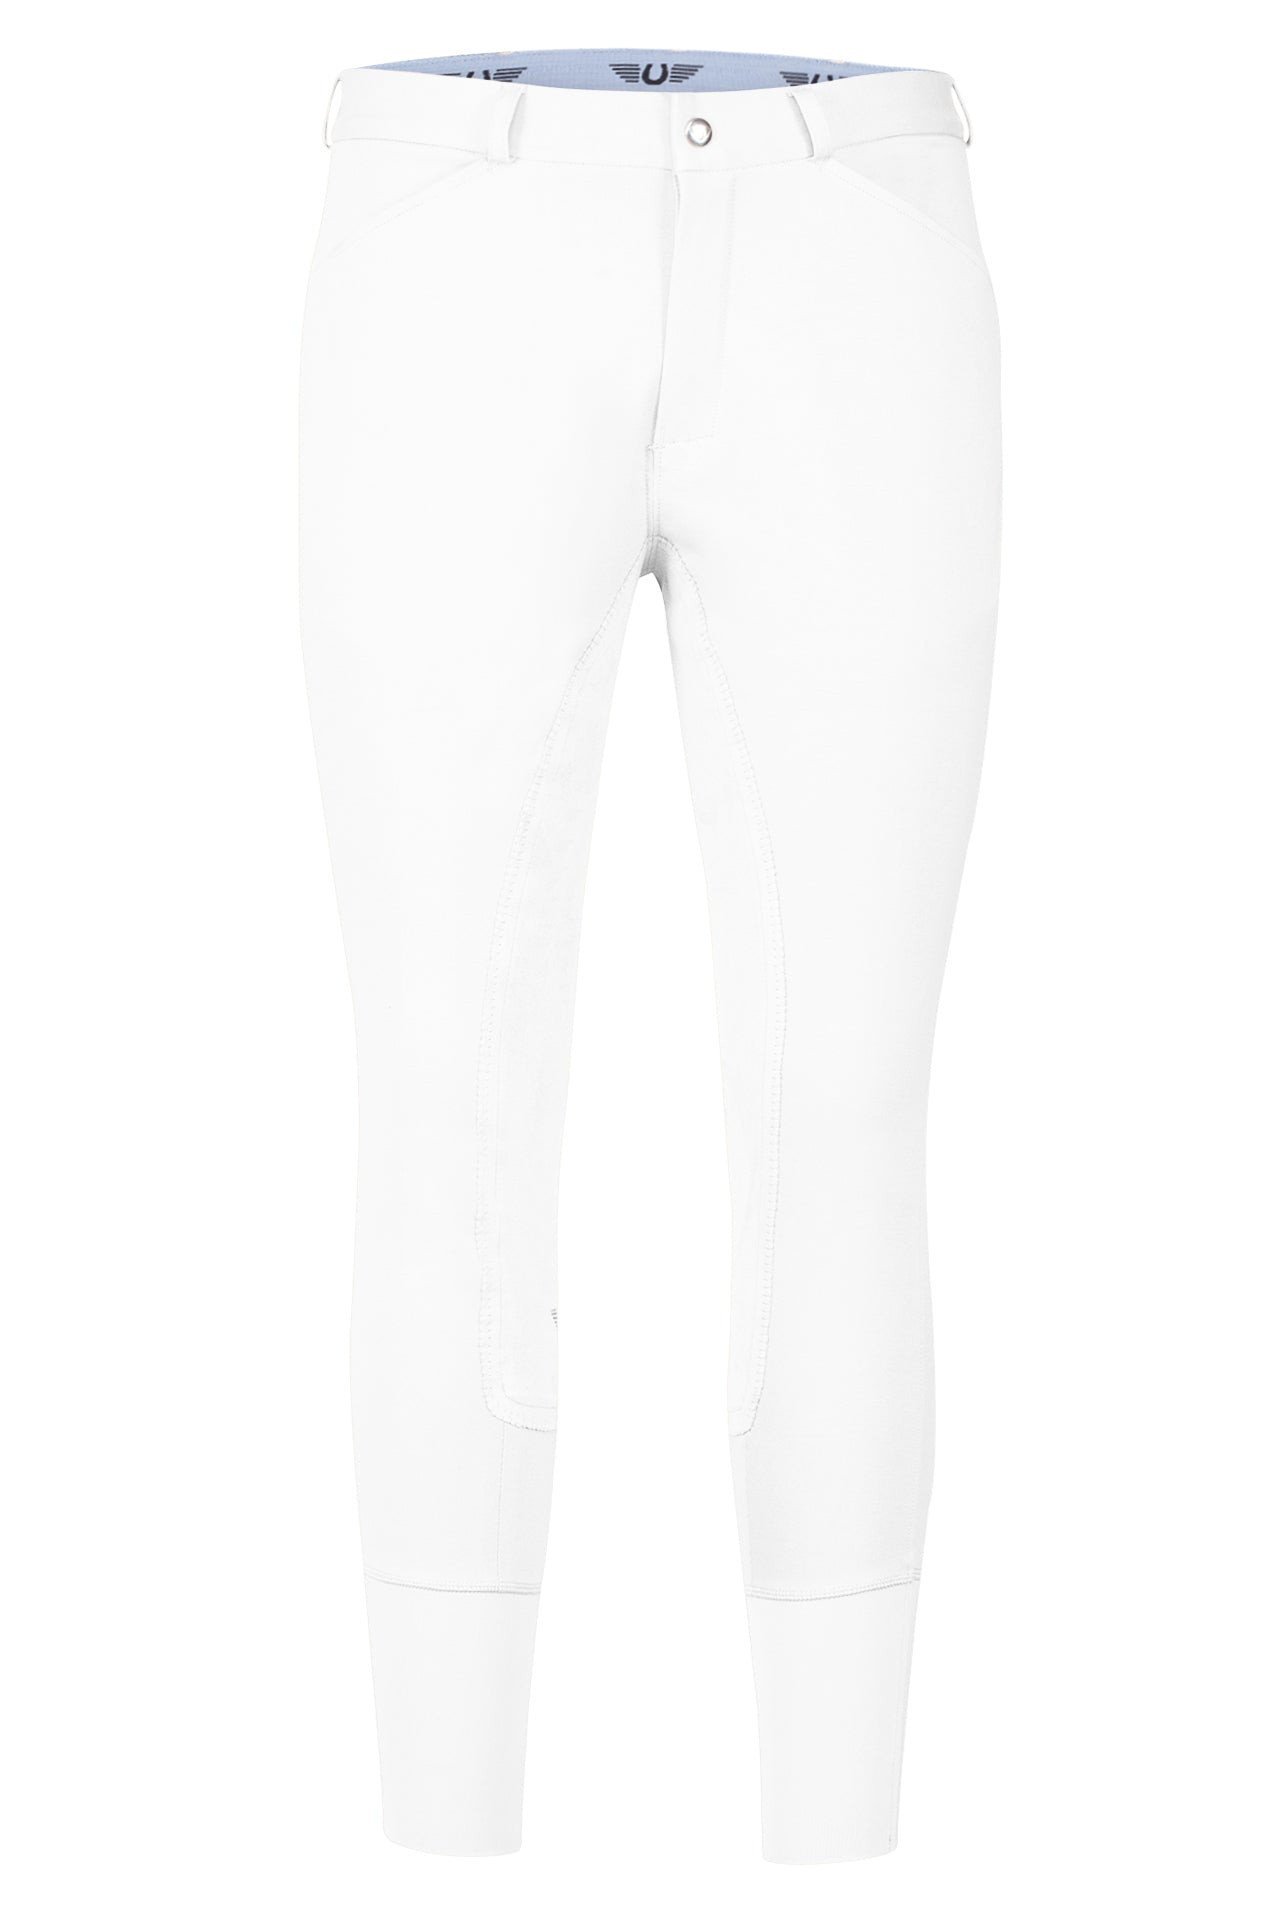 Men's Full Seat Patrol Breeches - TuffRider - Breeches.com